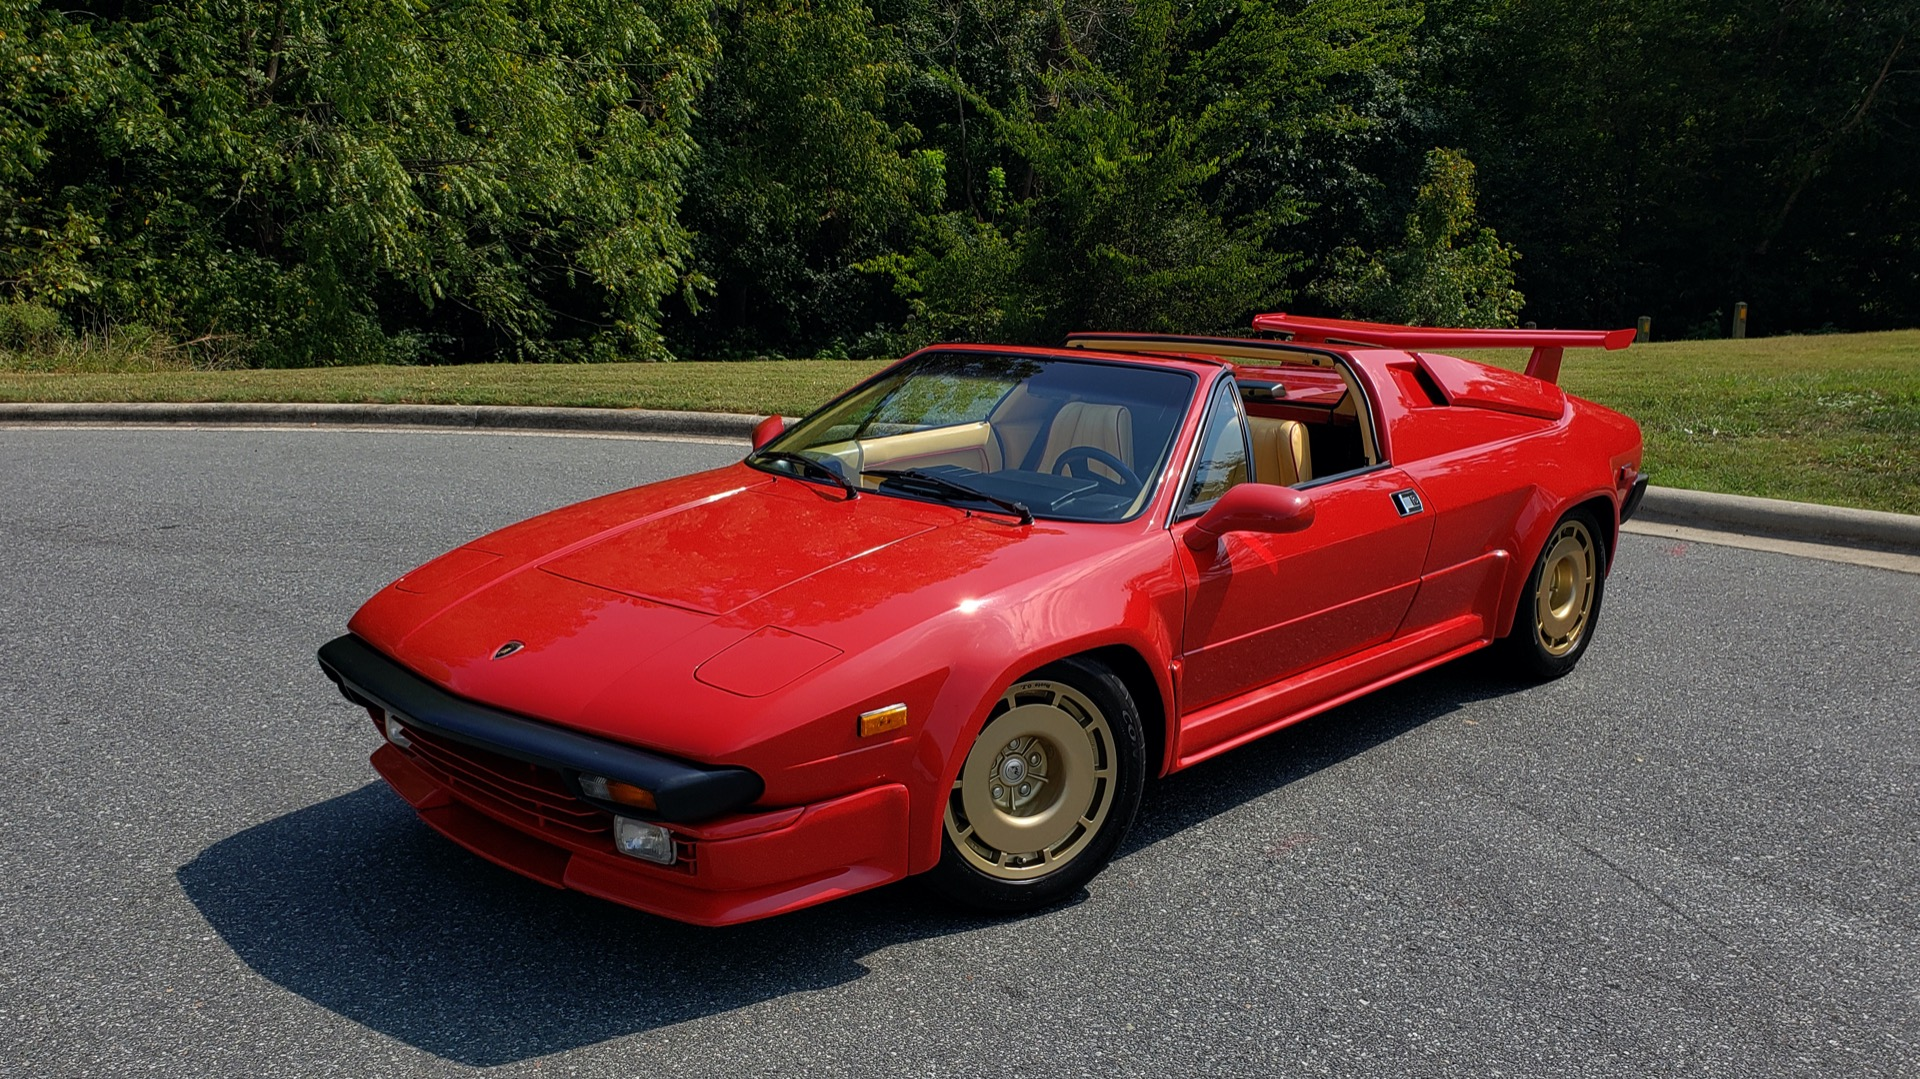 Used 1988 Lamborghini JALPA 3.5 / 5-SPD MANUAL / LOW MILES / EXCELLENT CONDITION for sale Sold at Formula Imports in Charlotte NC 28227 21